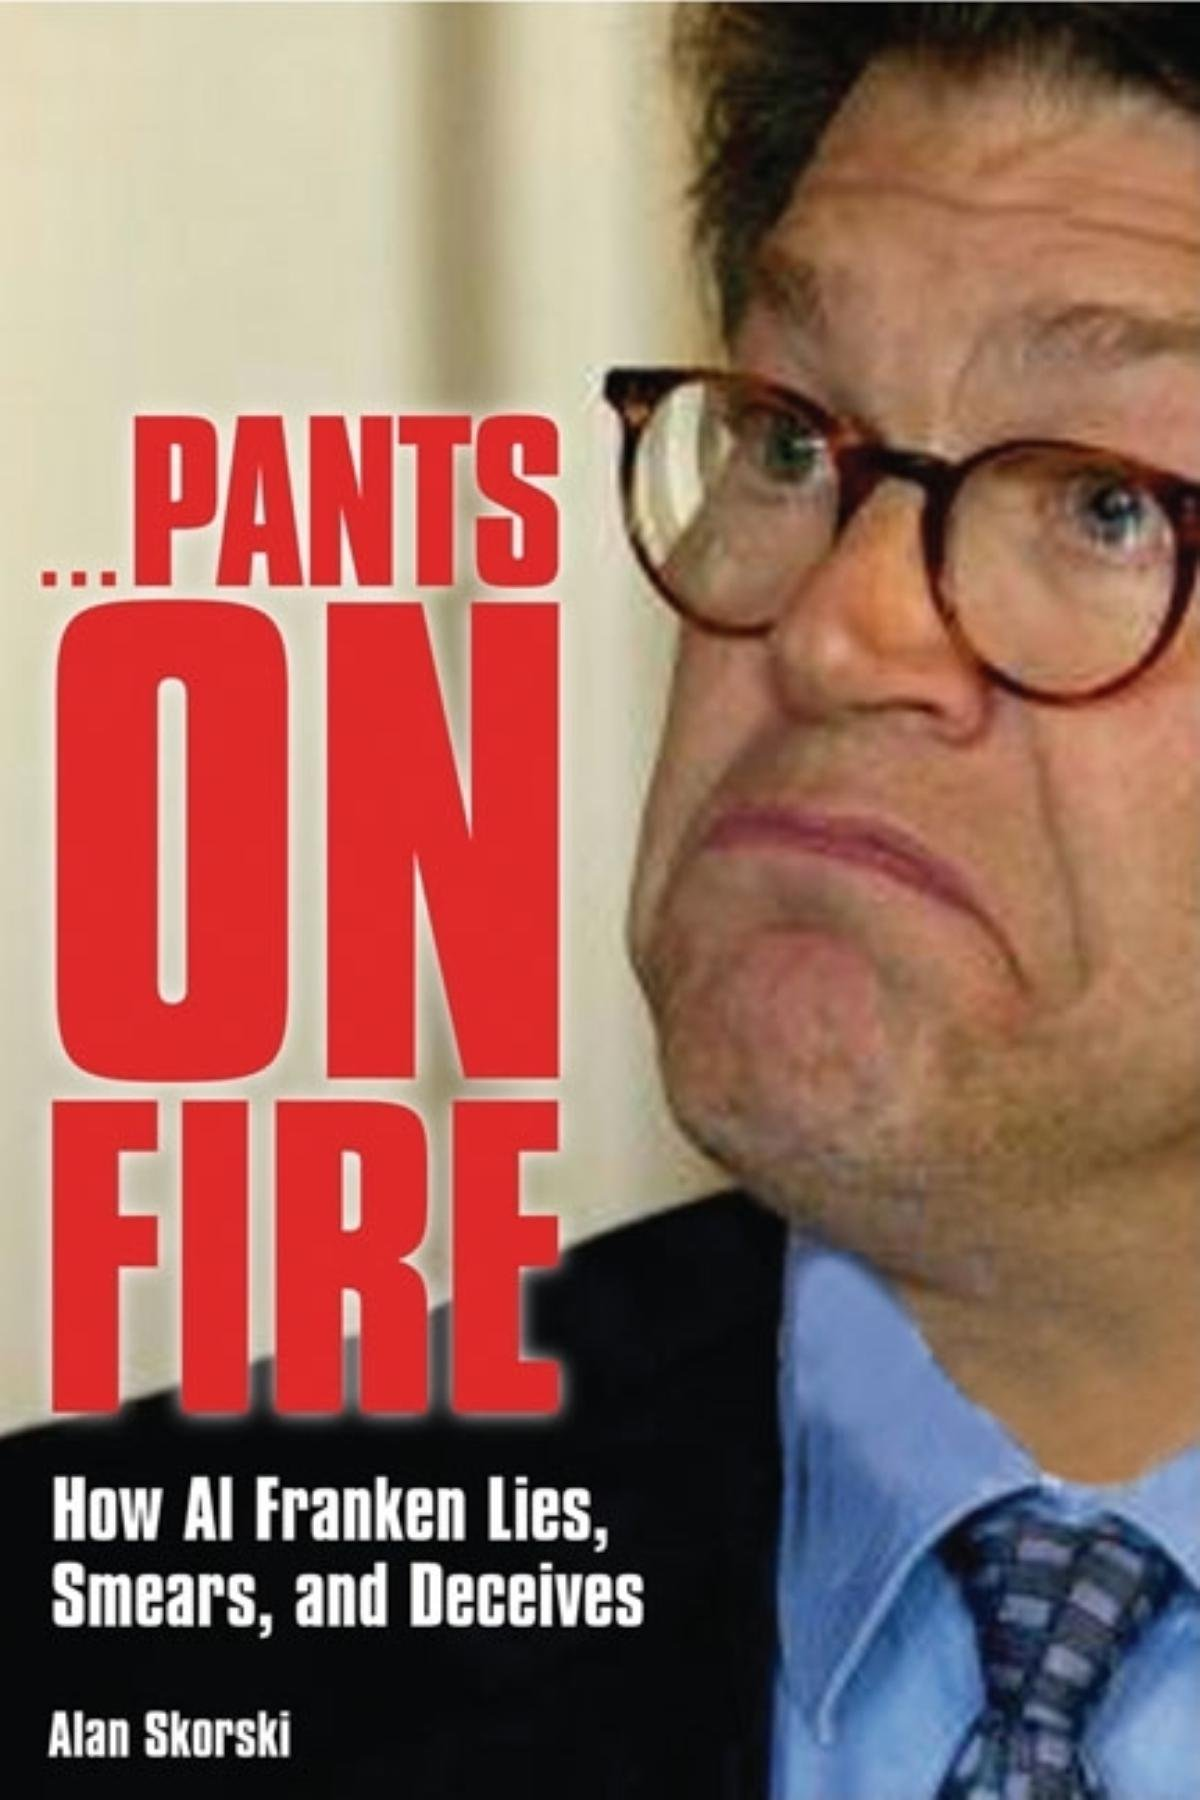 Download Pants on Fire: How Al Franken Lies, Smears, and Deceives PDF